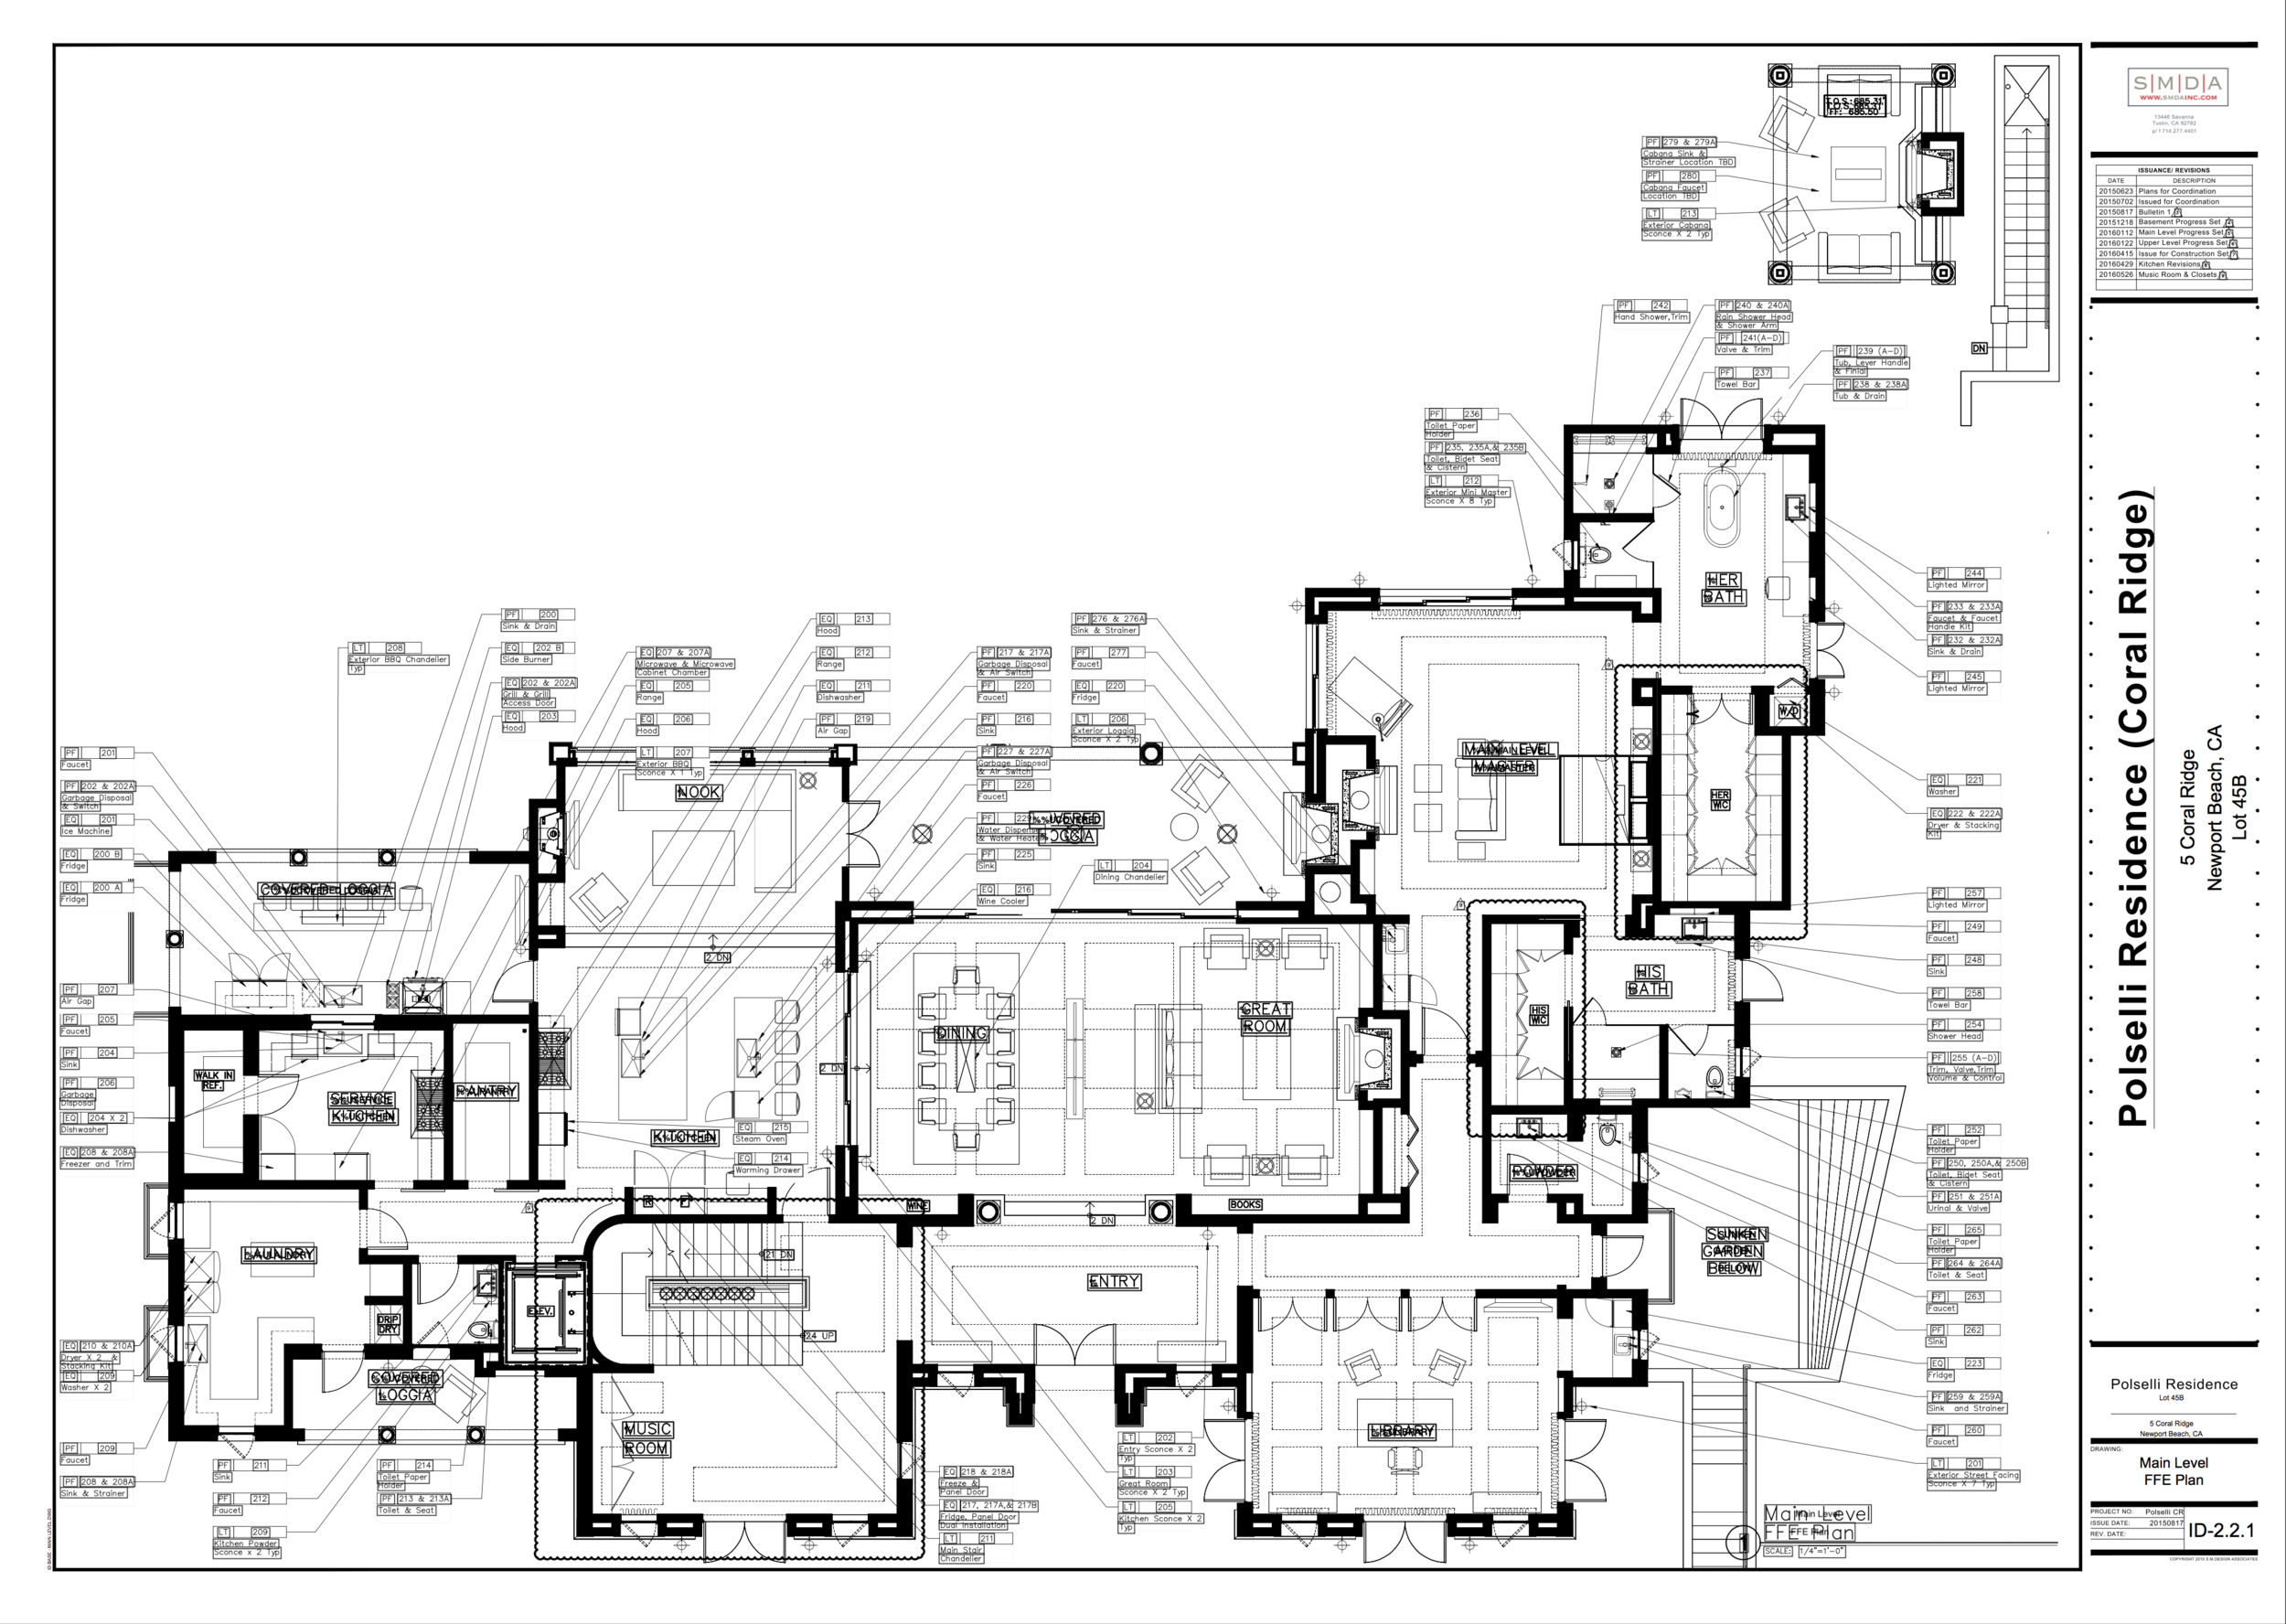 5 Coral Ridge Floorplan 2.png